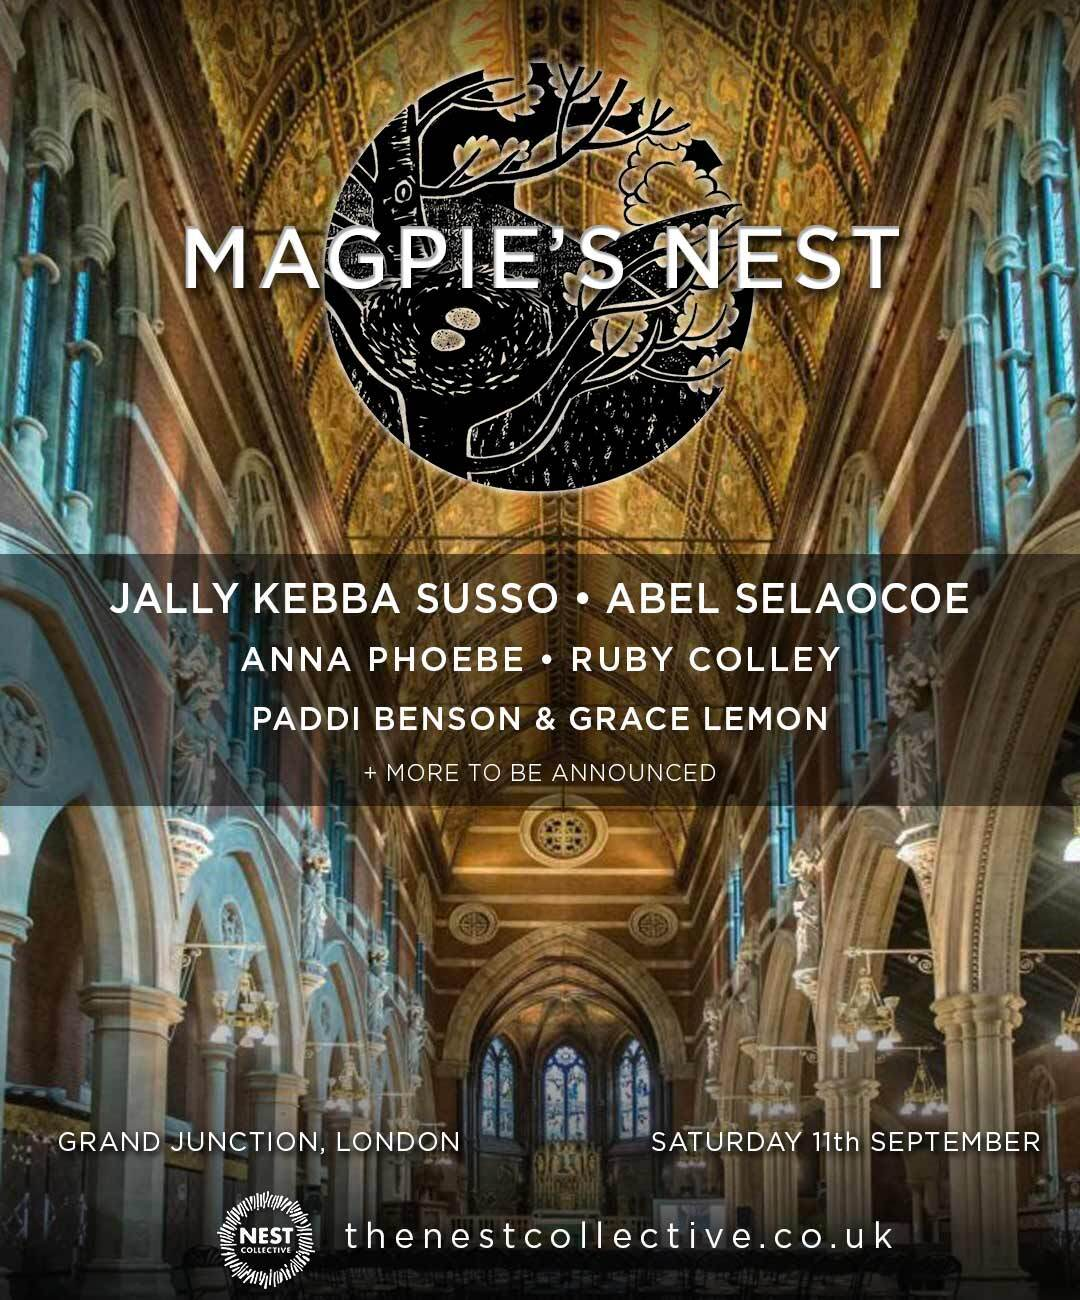 Music Festival in London - Magpies Nest